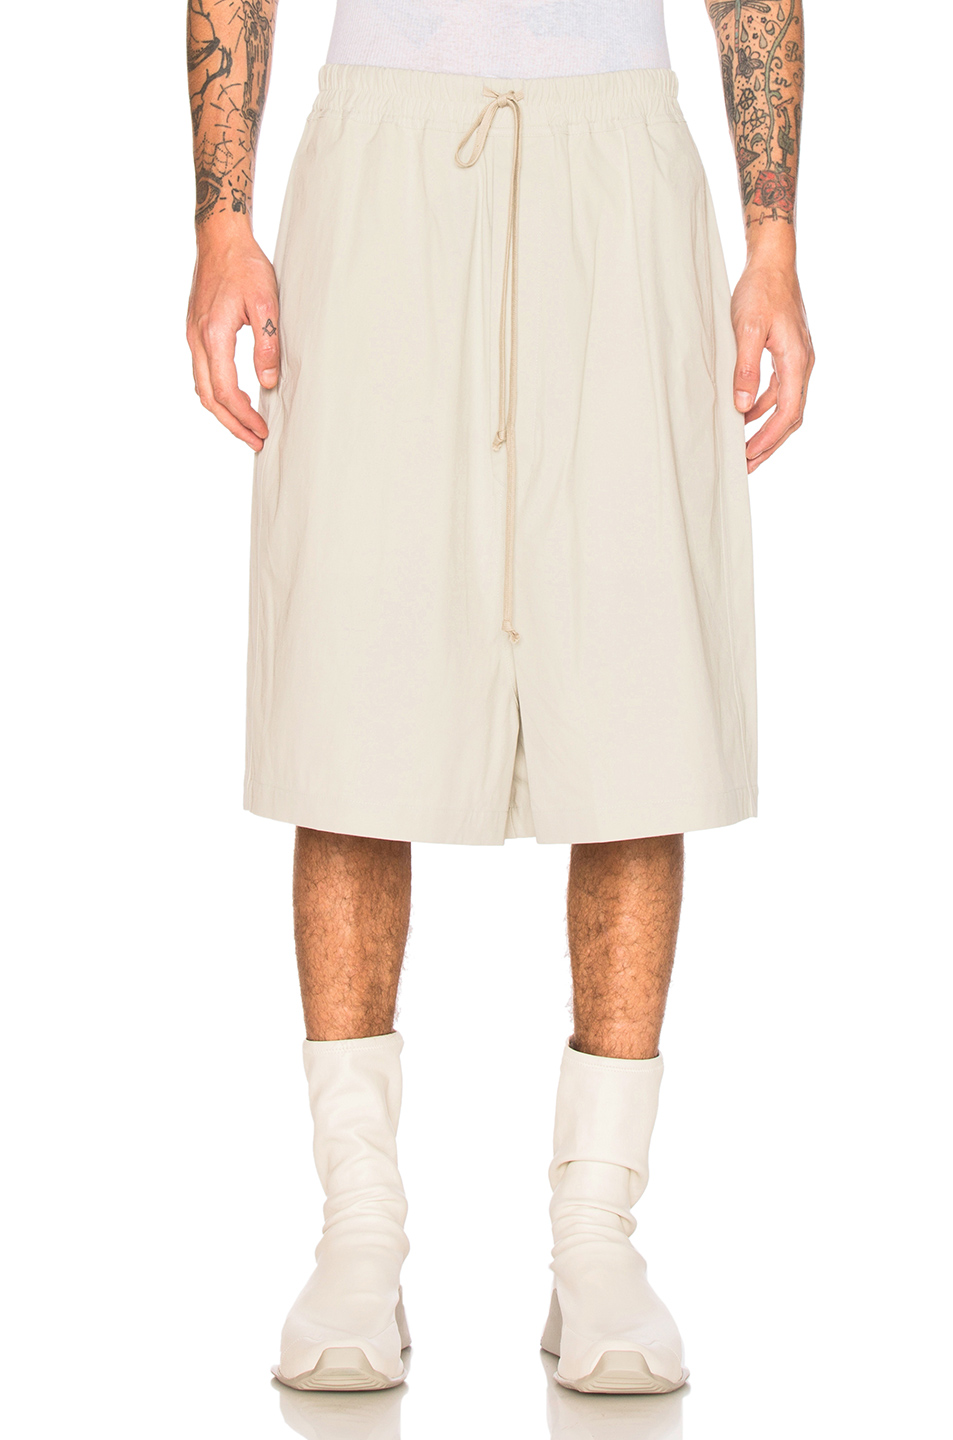 Rick Owens Megashorts in Gray,Neutrals